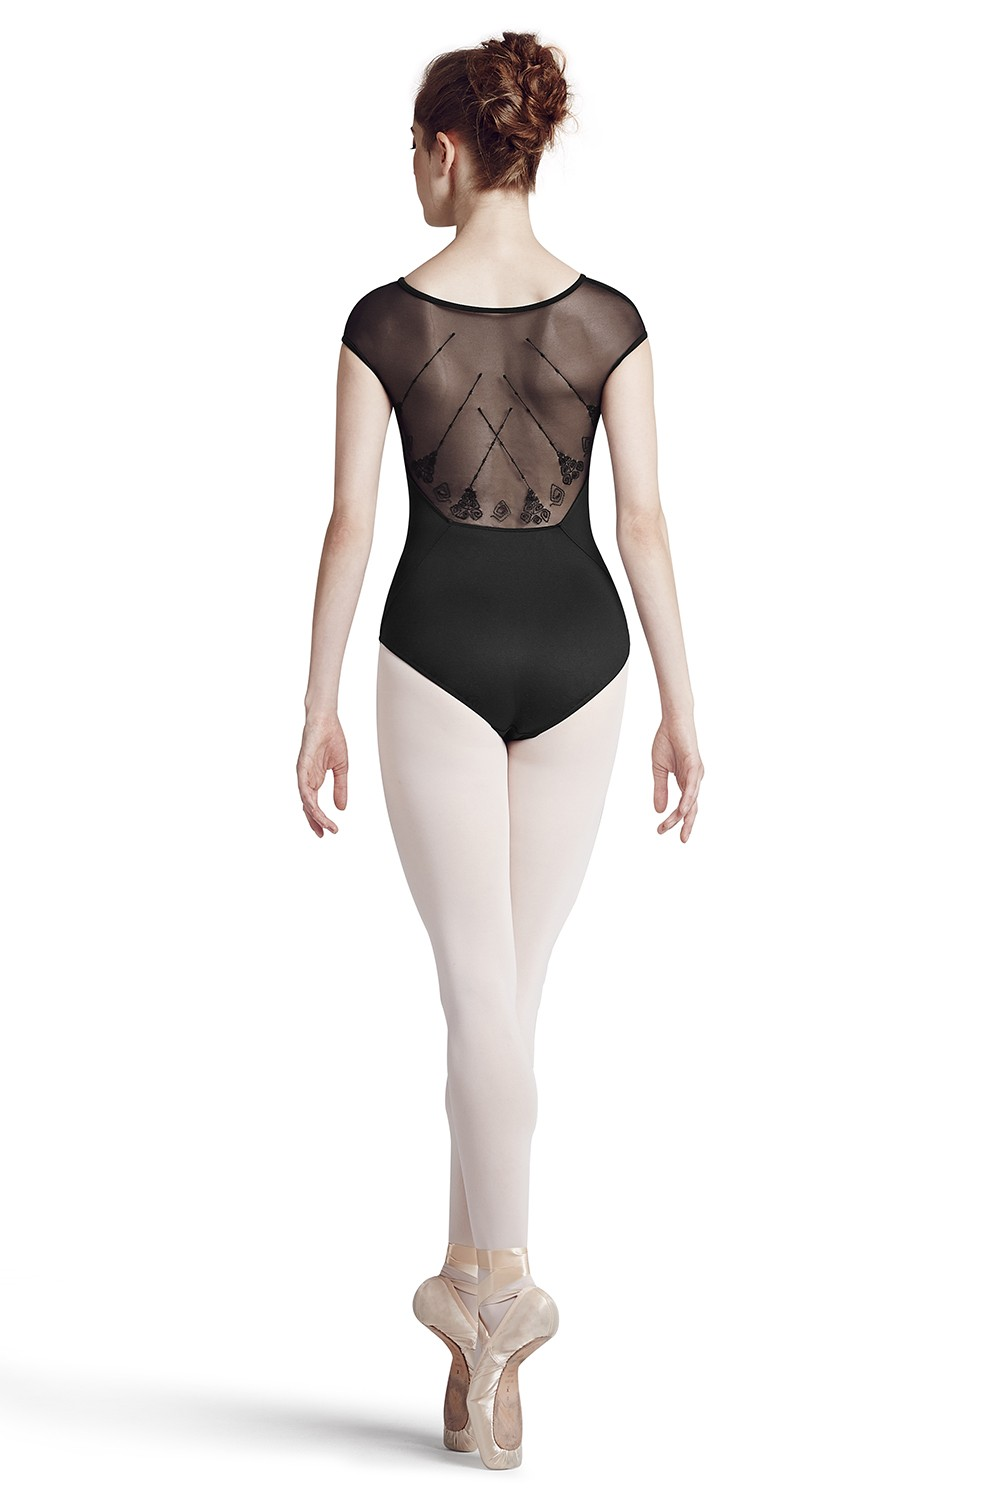 Jolana Women's Dance Leotards